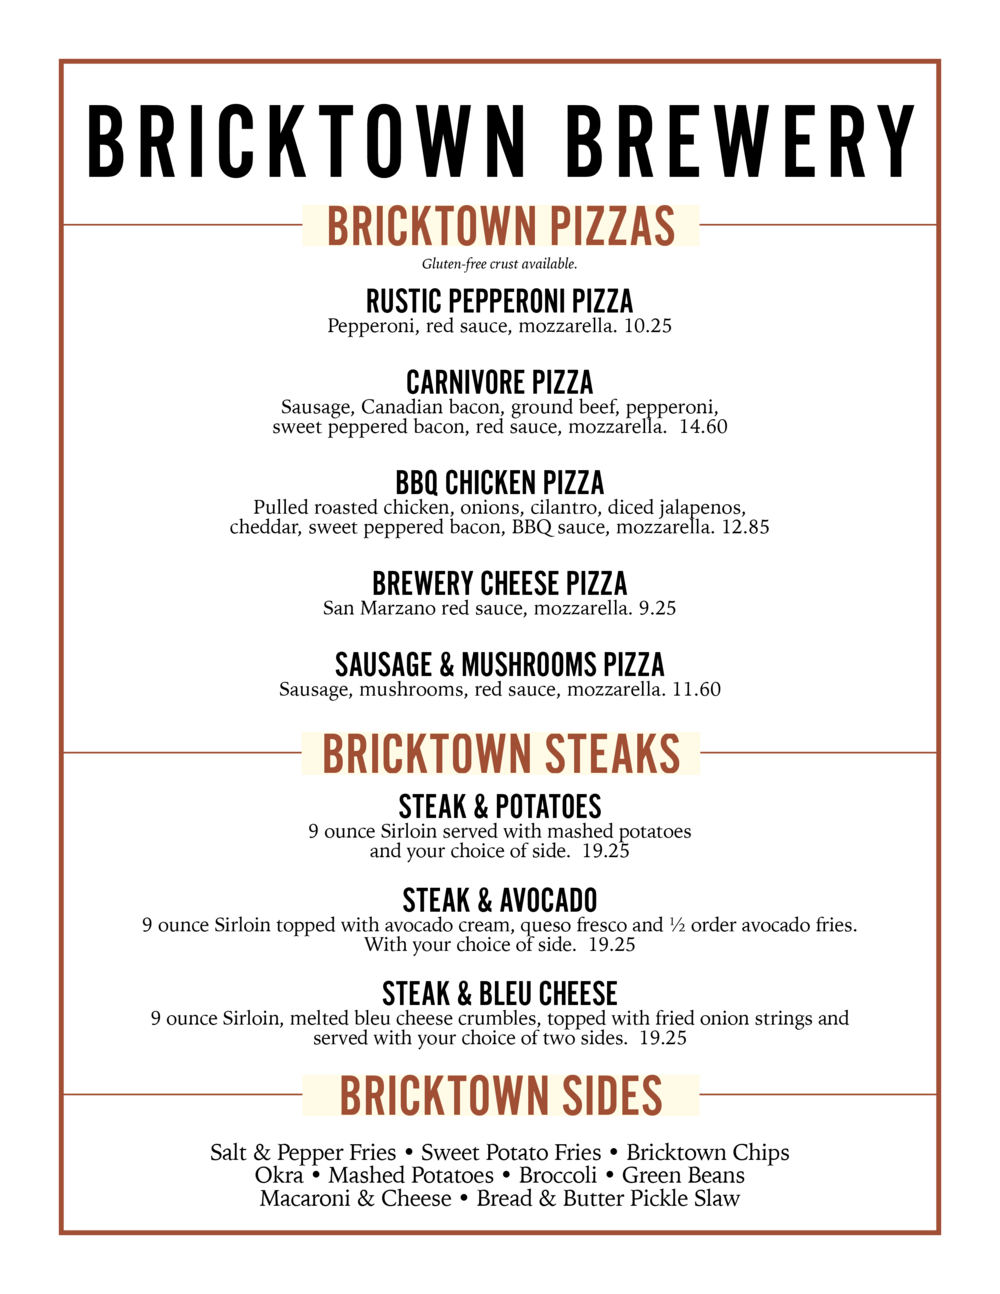 2A-Shawnee-PIZZA-STEAKS-COCKTAILS 12-18.png